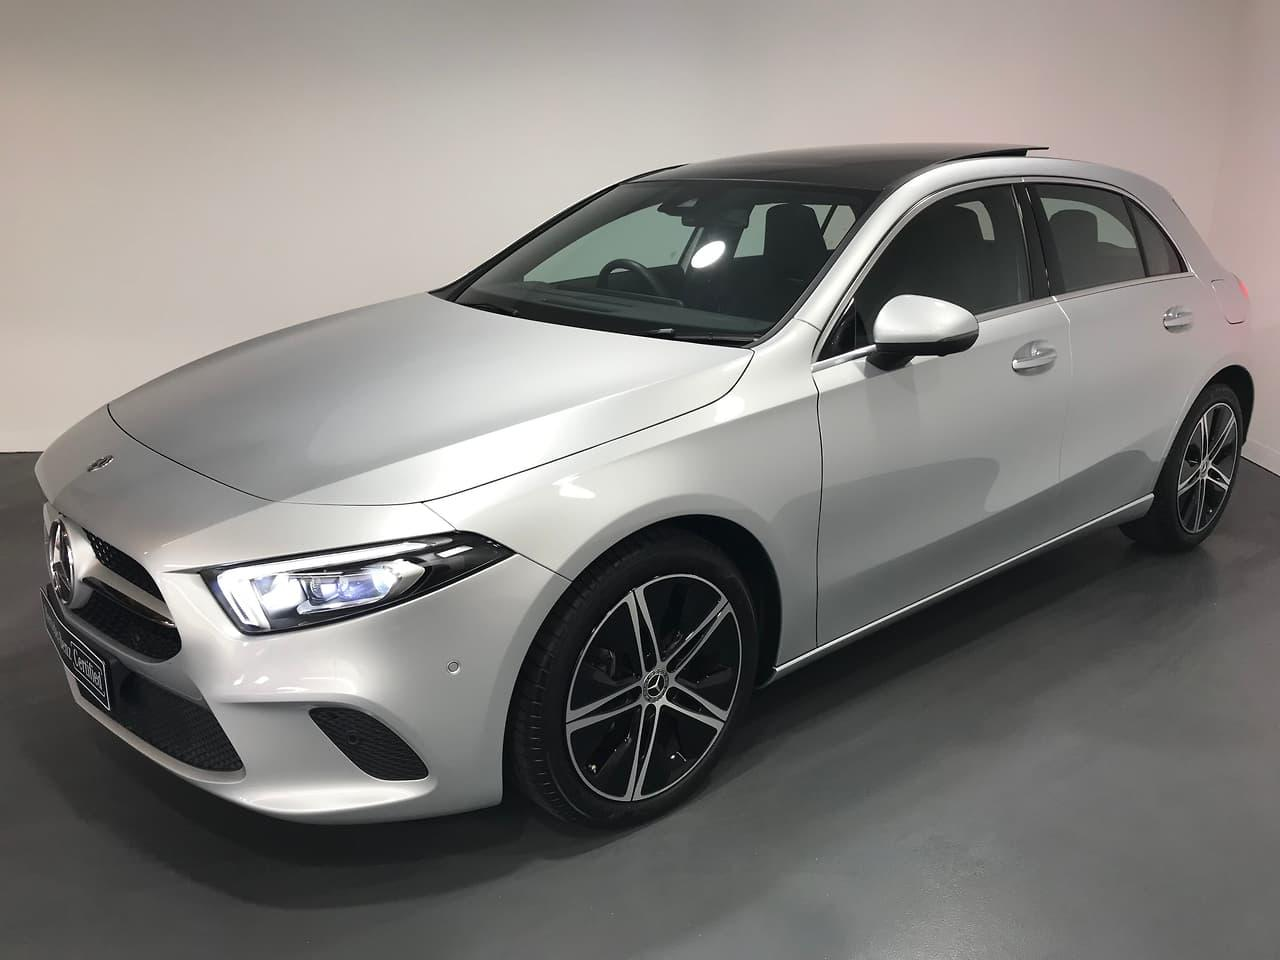 2018 Mercedes-Benz A-CLASS W177 A250 Limited Edition